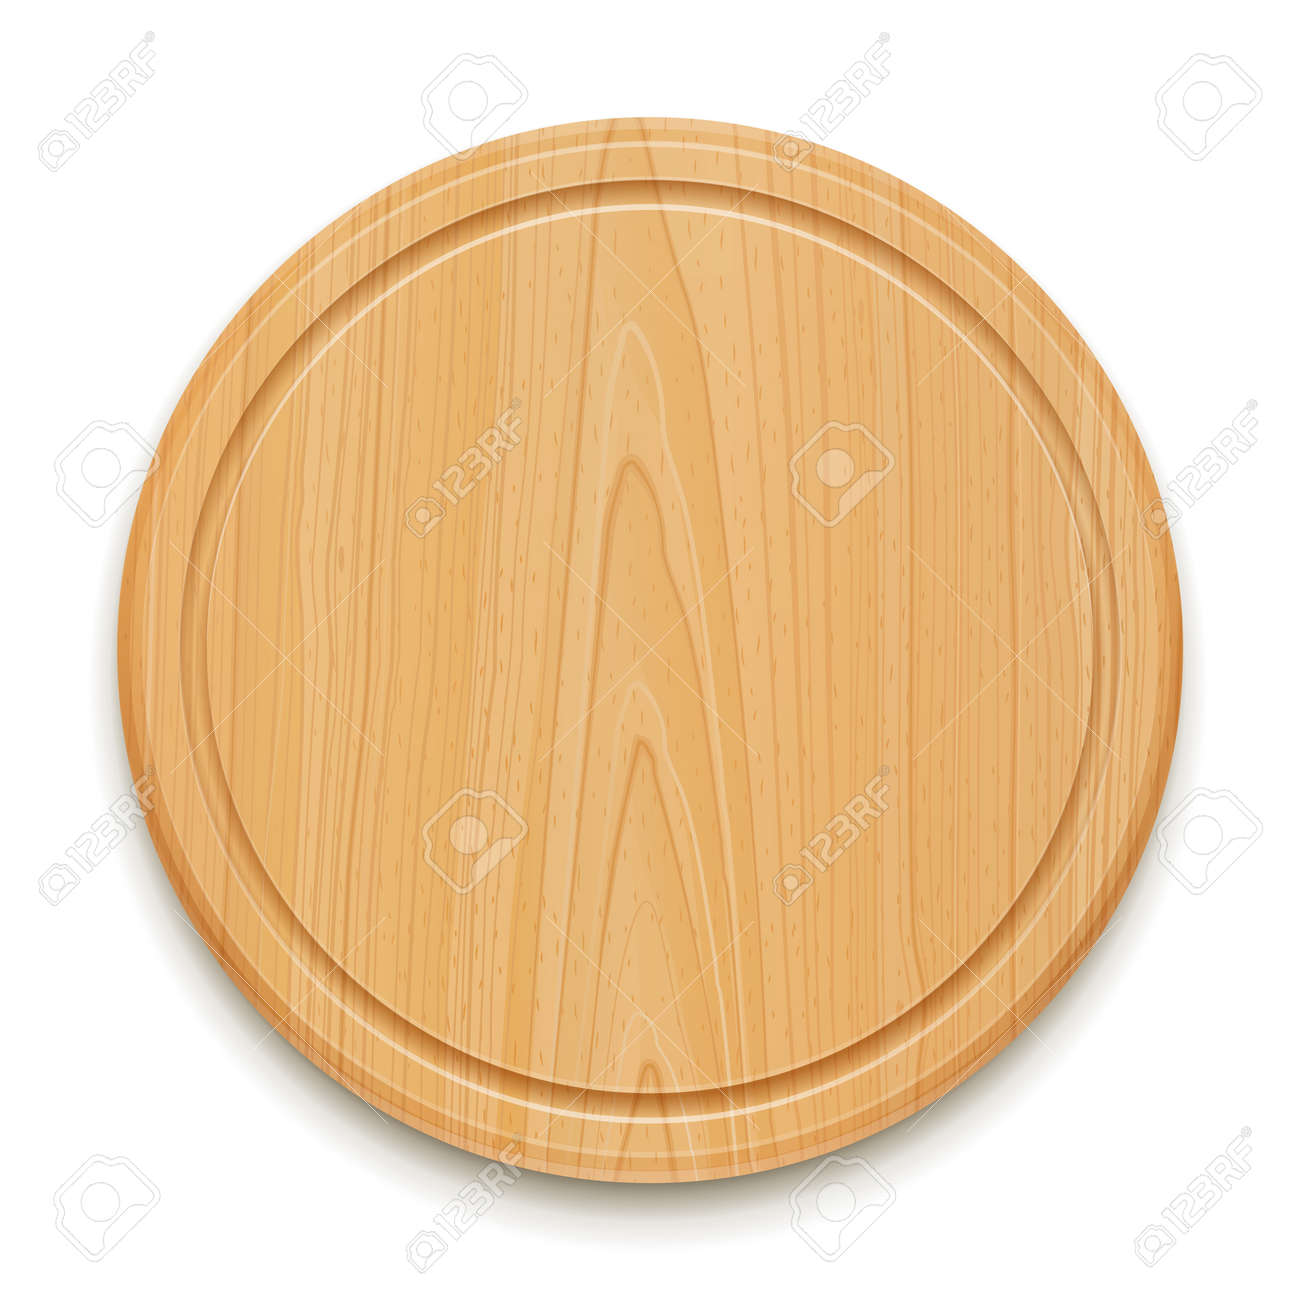 kitchen cutting board outside cabinets vector illustration isolated on white background stock 12328994